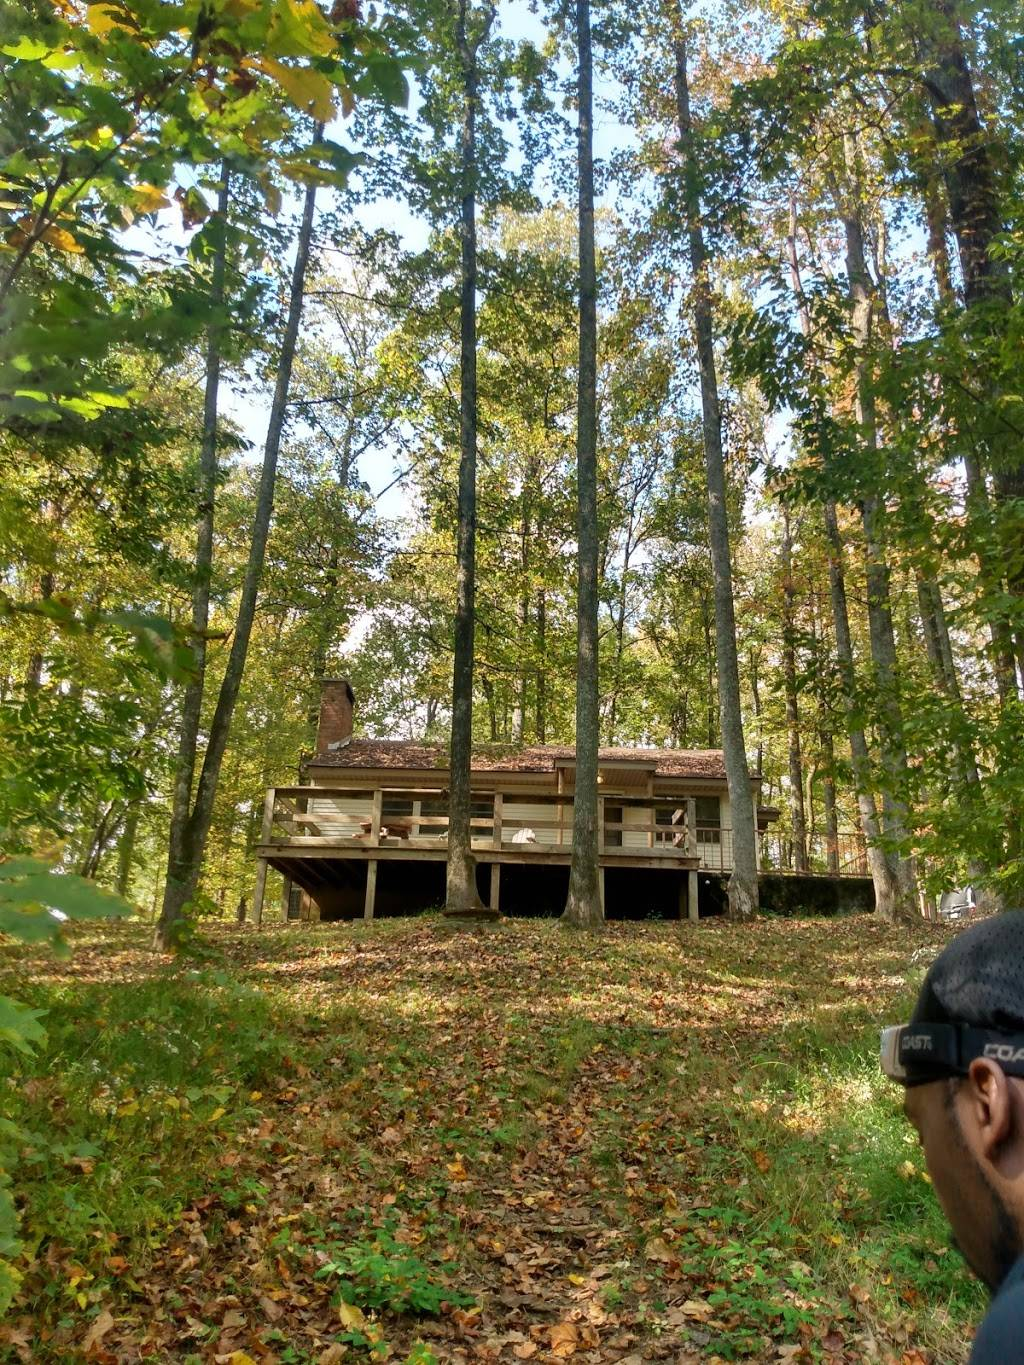 Meeman-Shelby Forest Cabins - real estate agency  | Photo 1 of 8 | Address: Grassy Lake Rd, Millington, TN 38053, USA | Phone: (901) 876-5215